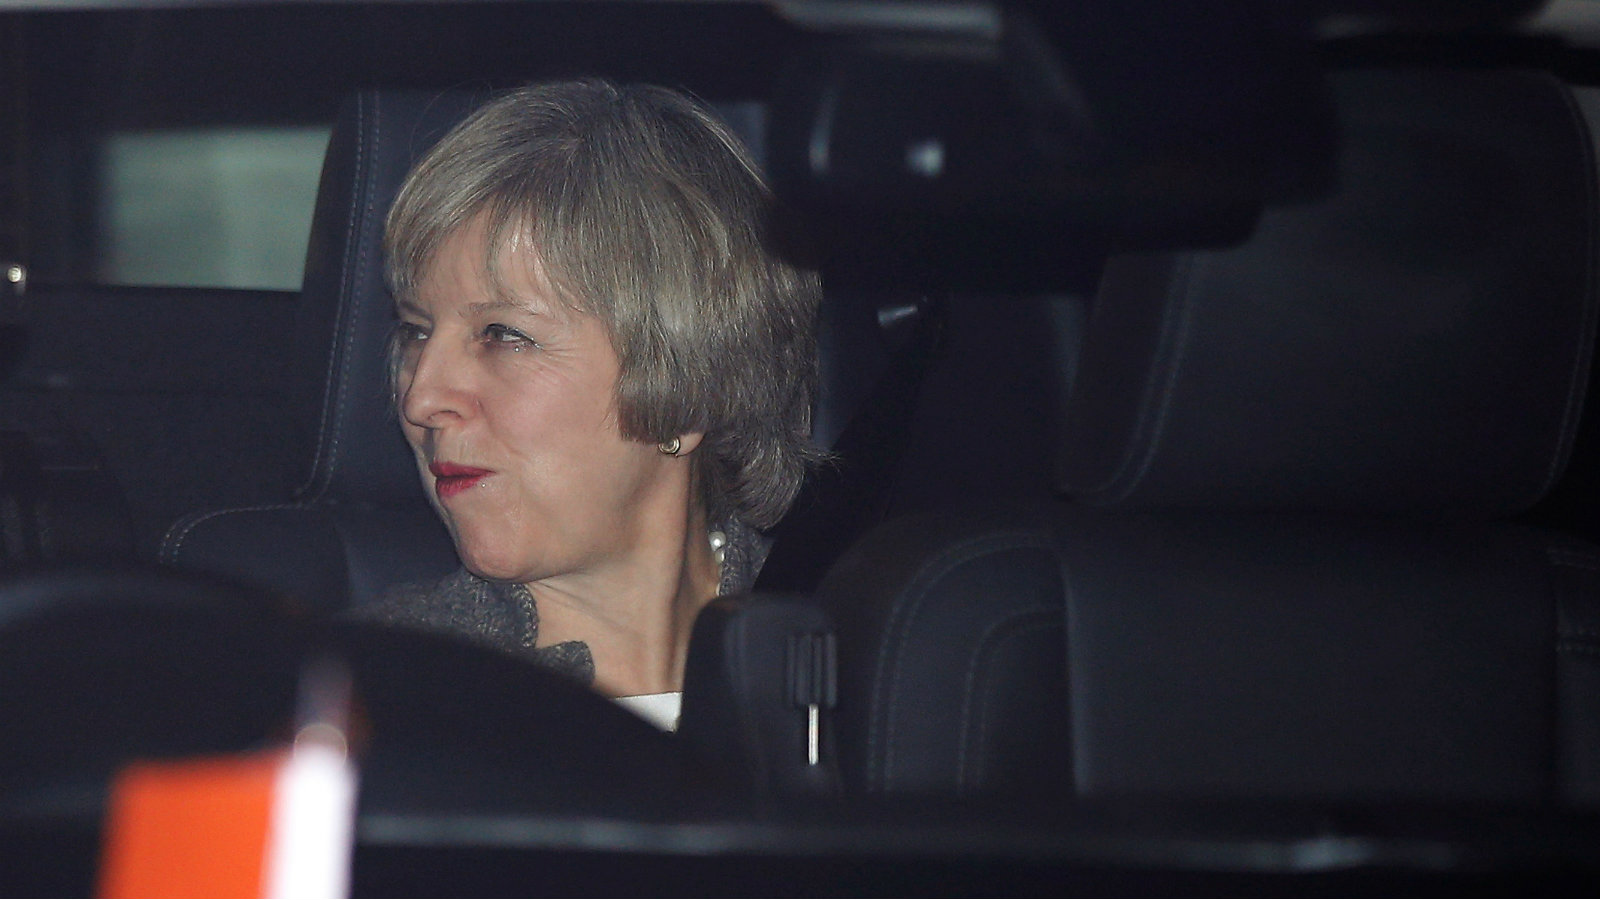 Britain's Prime Minister Theresa May sits in her car after her arrival at the airport in New Delhi, India, November 6, 2016.